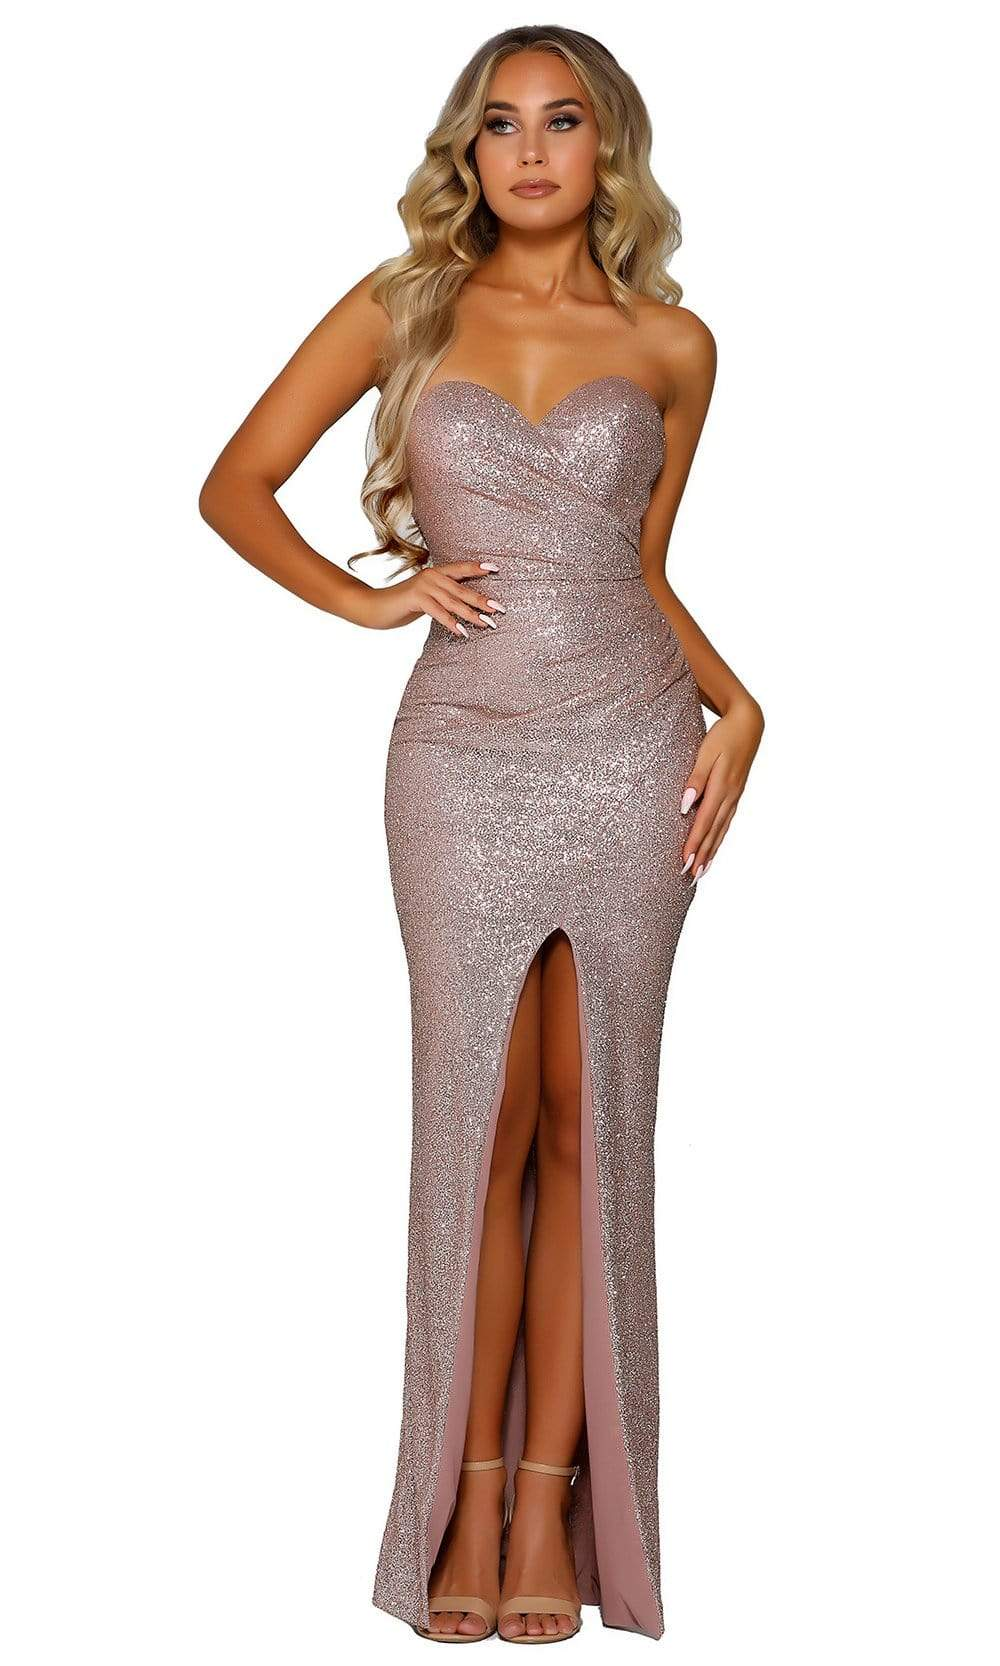 Portia and Scarlett - PS6361 Fitted Glitter Embellished Evening Gown from Portia and Scarlett